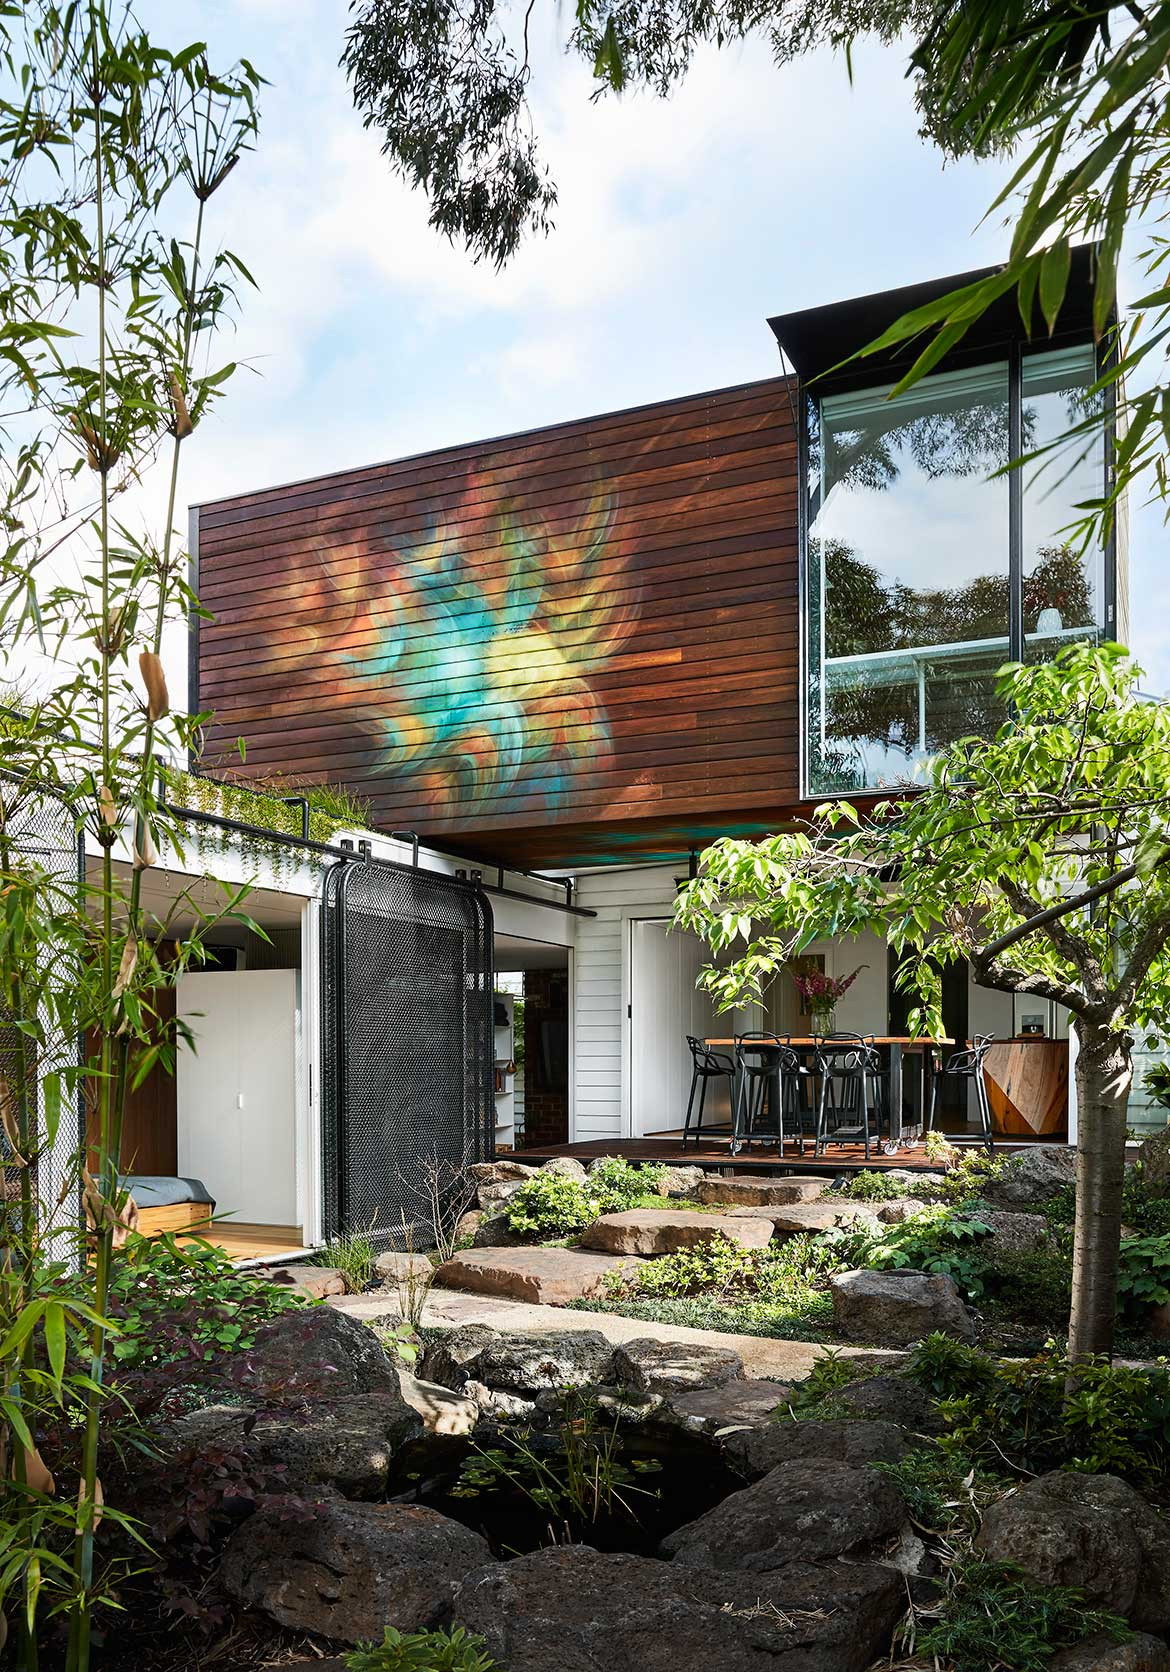 Kiah House Austin Maynard Architects cc Tess Kelly backyard